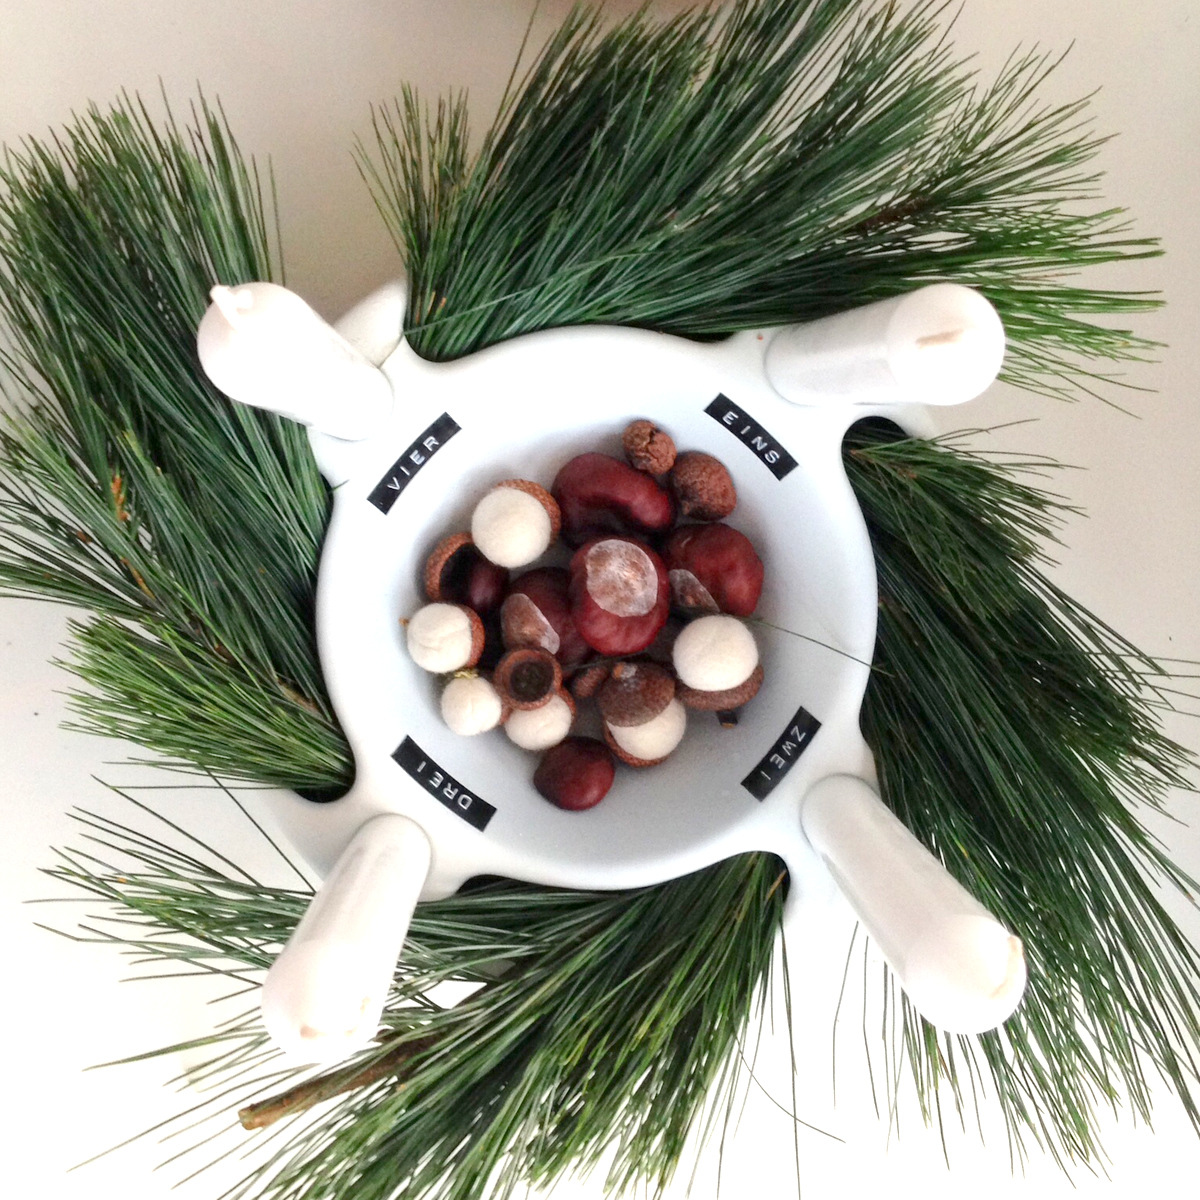 Adventskranz - Upcycling vintage Schale